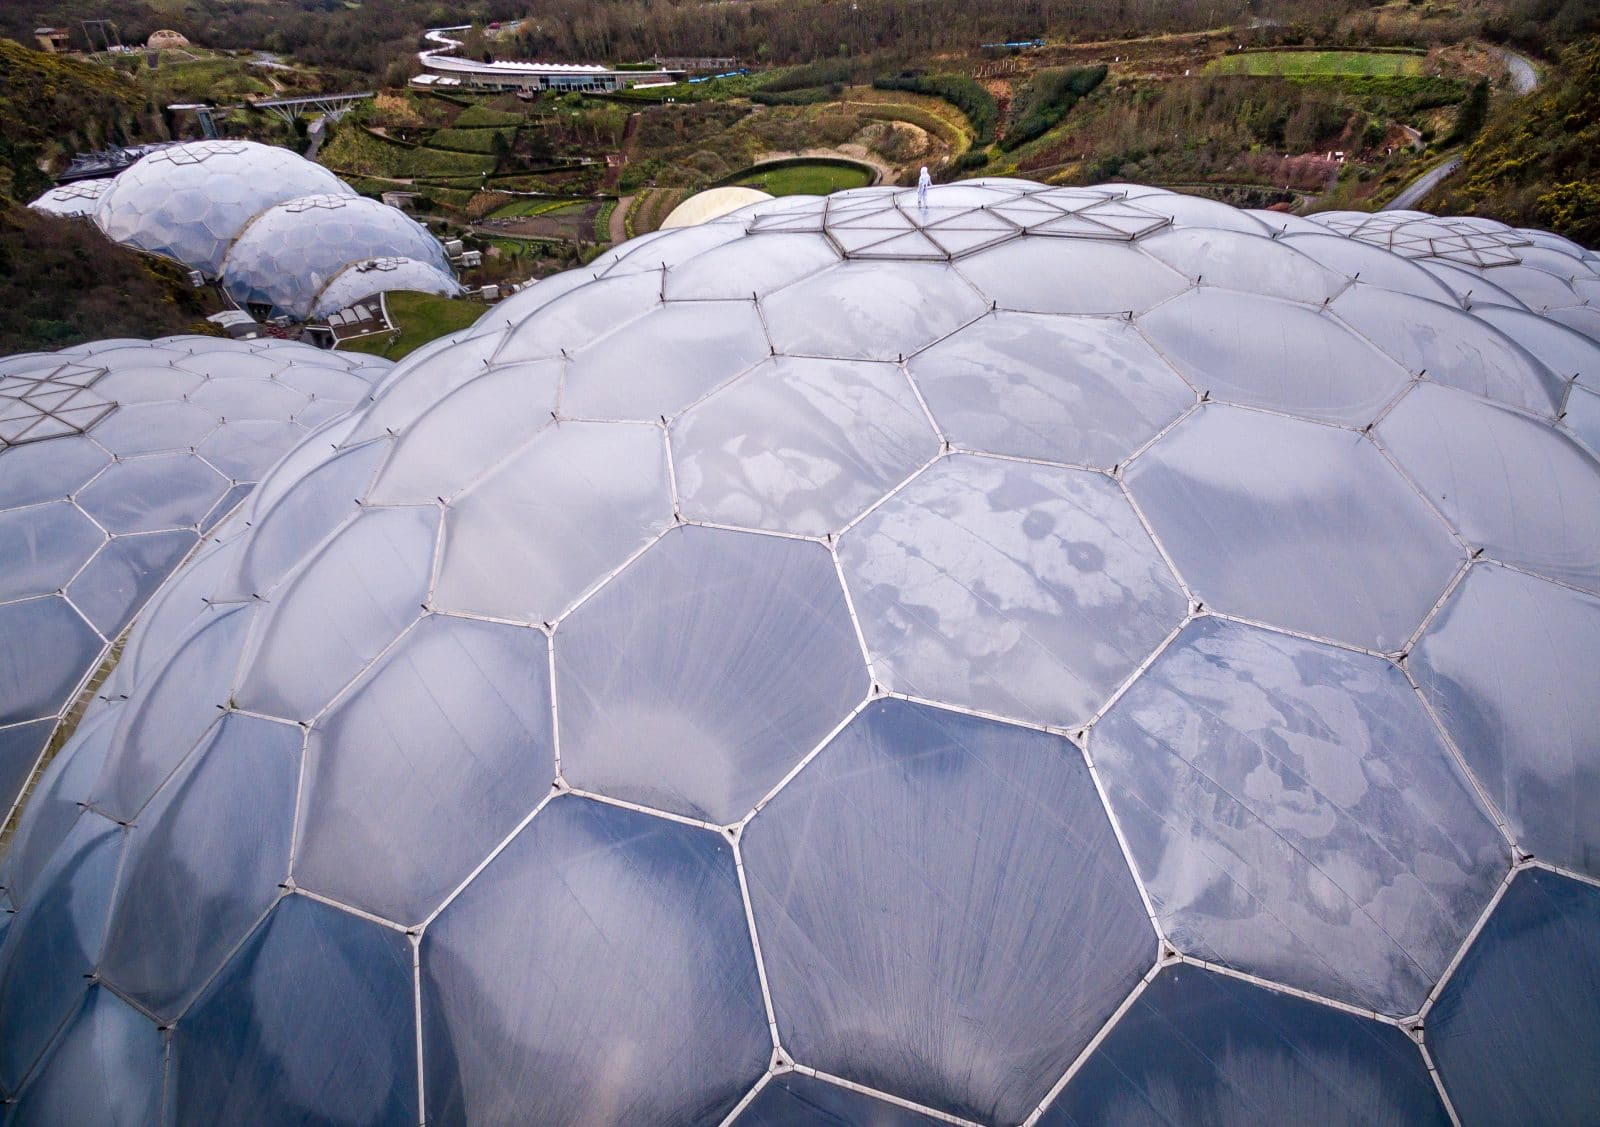 Eden Project, drone Photography, aerial photography in Cornwall, drones cornwall